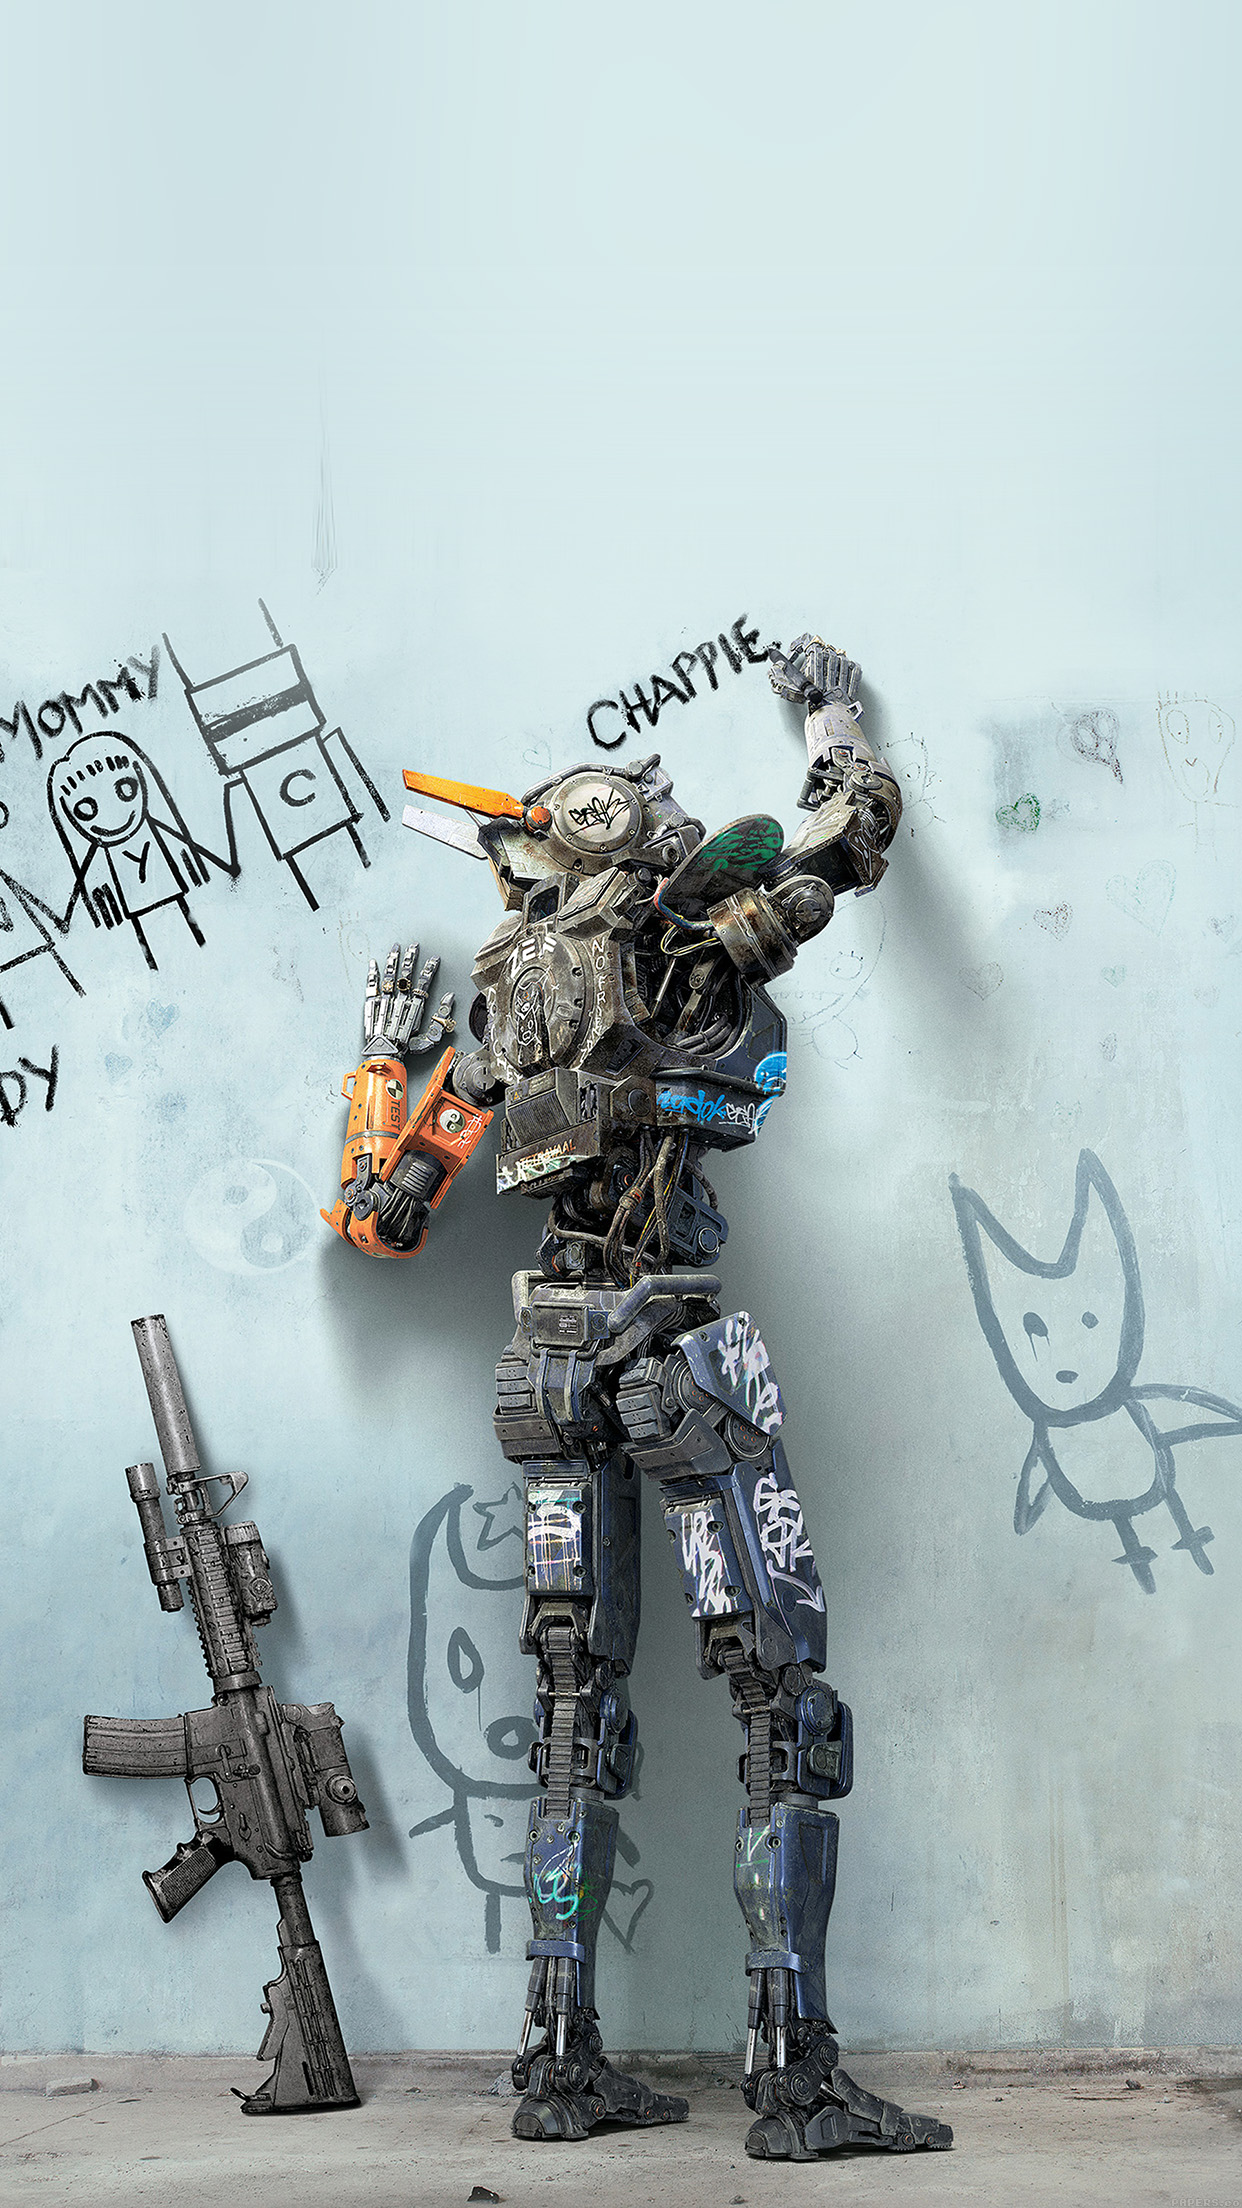 Chappie Robot Art Film Poster Android Wallpaper Android Hd Wallpapers